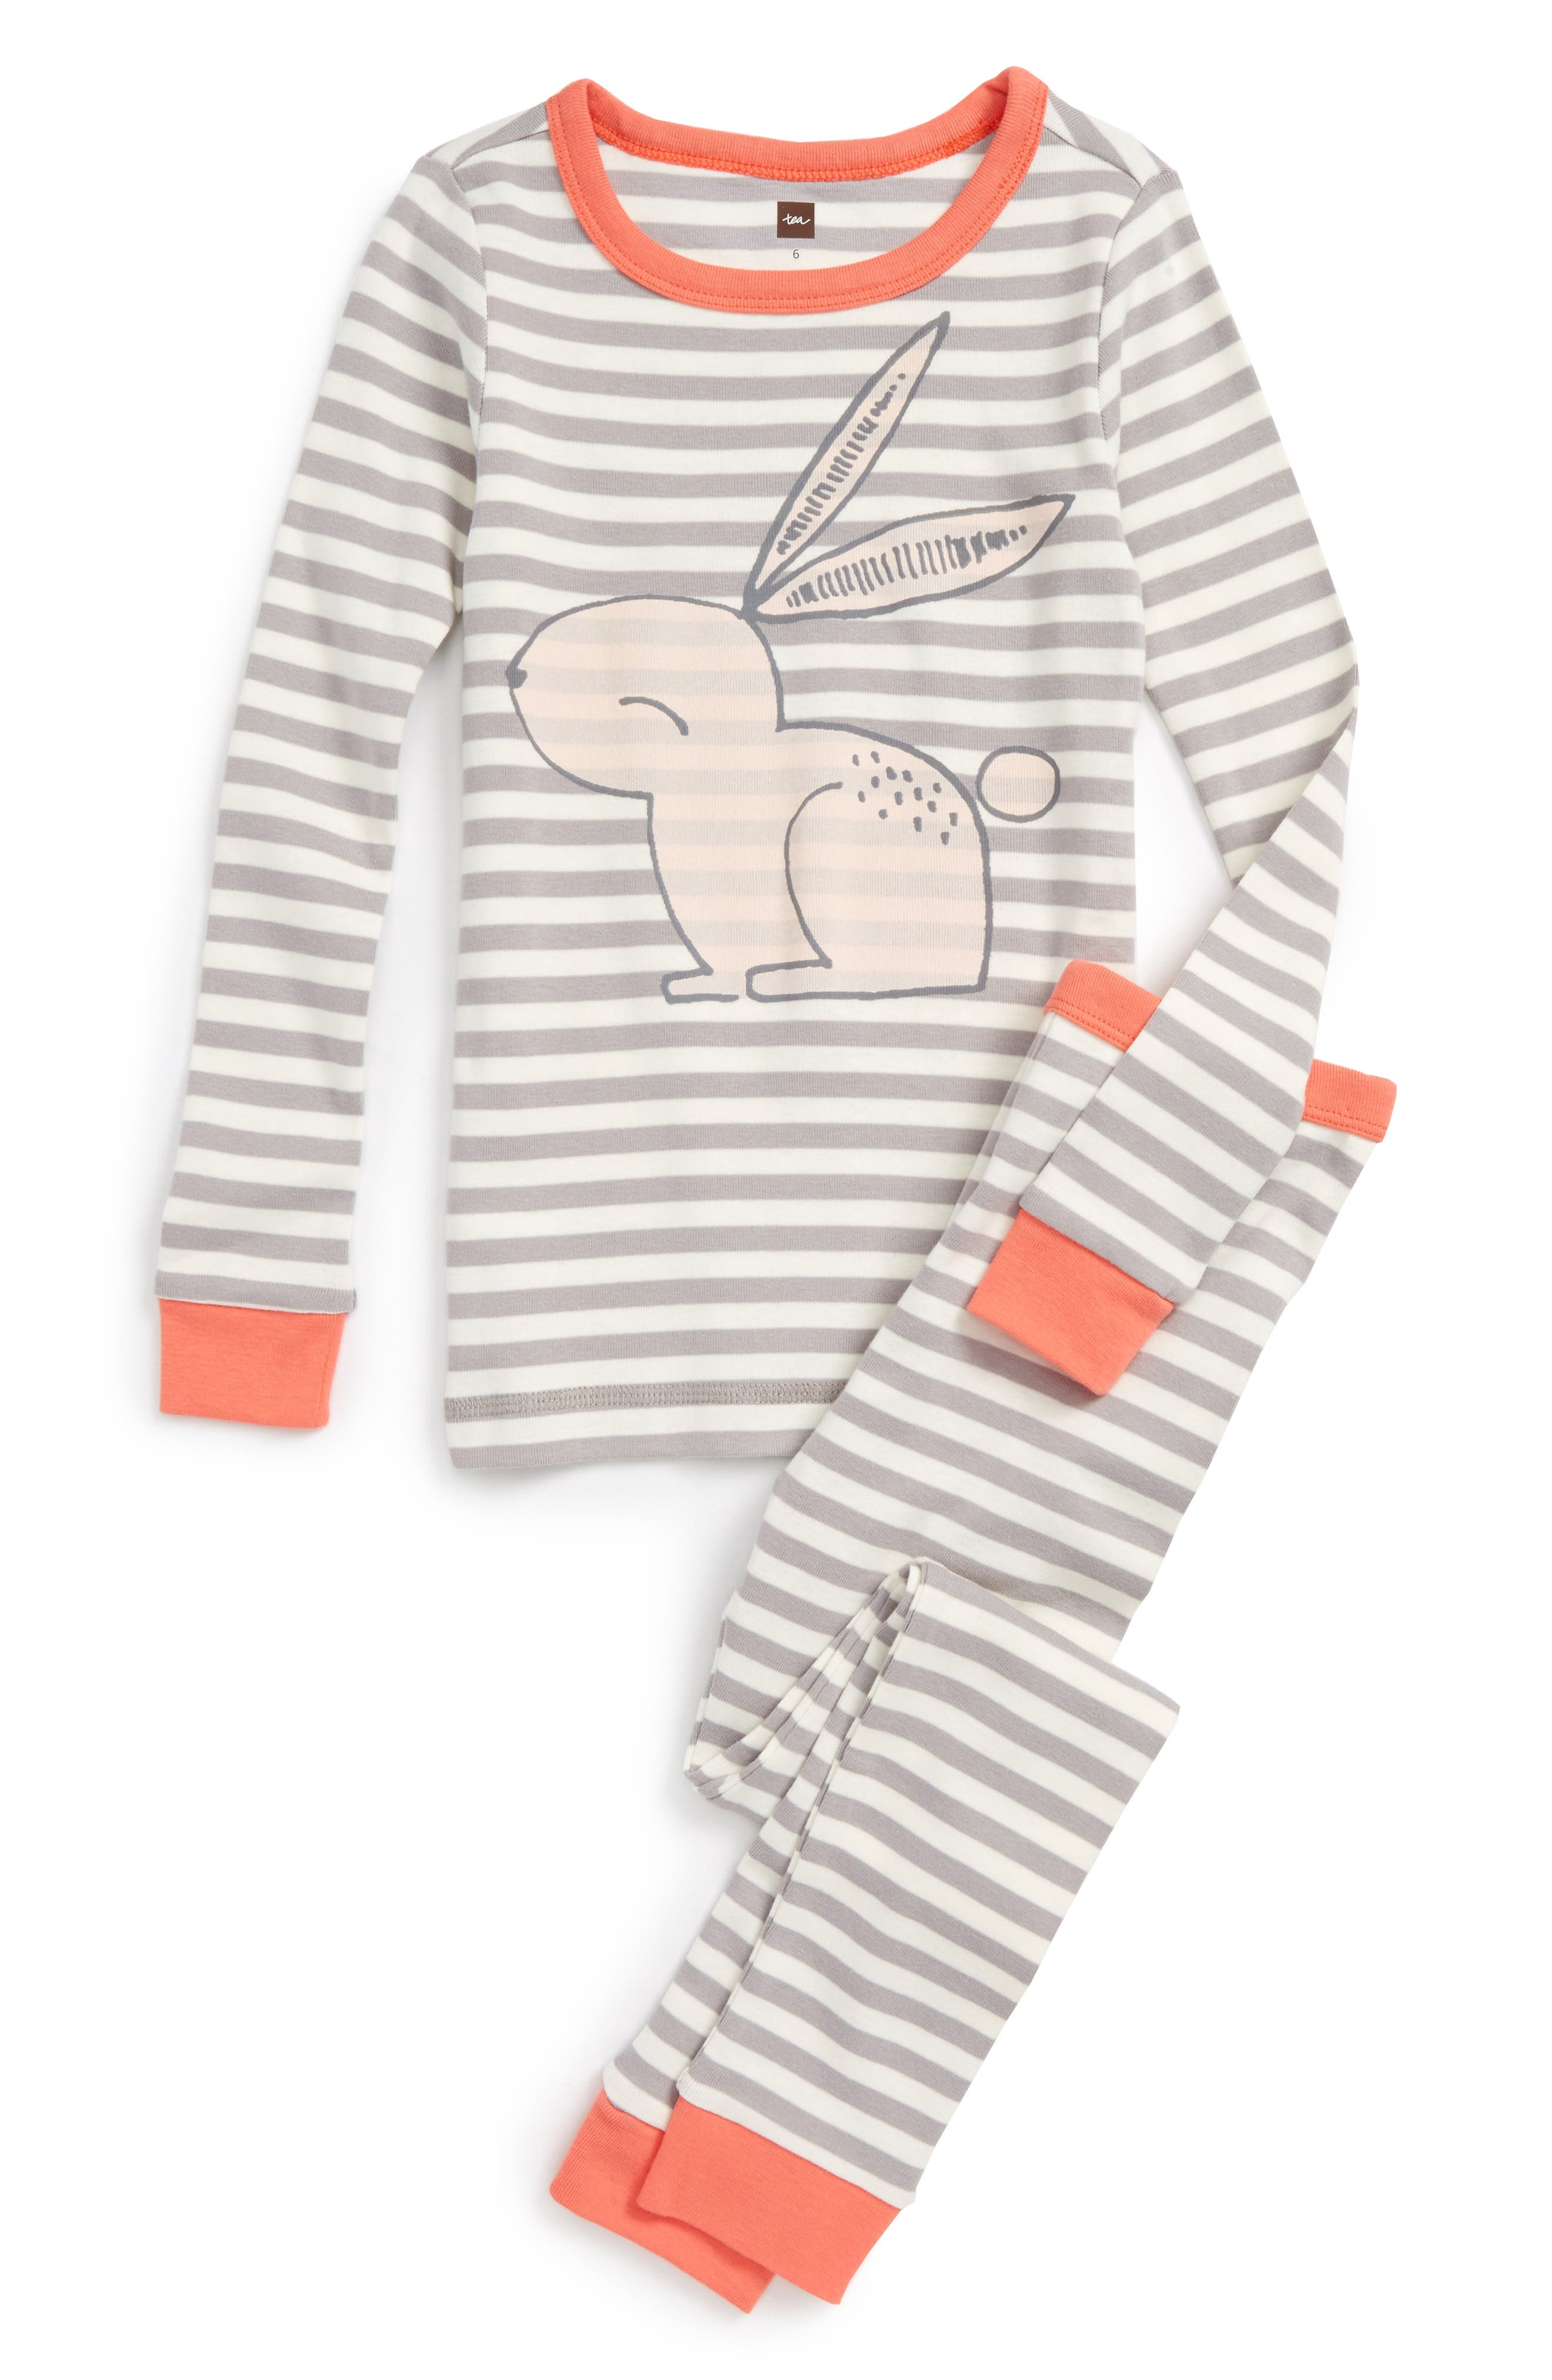 Main Image - Tea Collection Rabaid Fitted Two-Piece Pajamas (Toddler Girls, Little Girls & Big Girls)